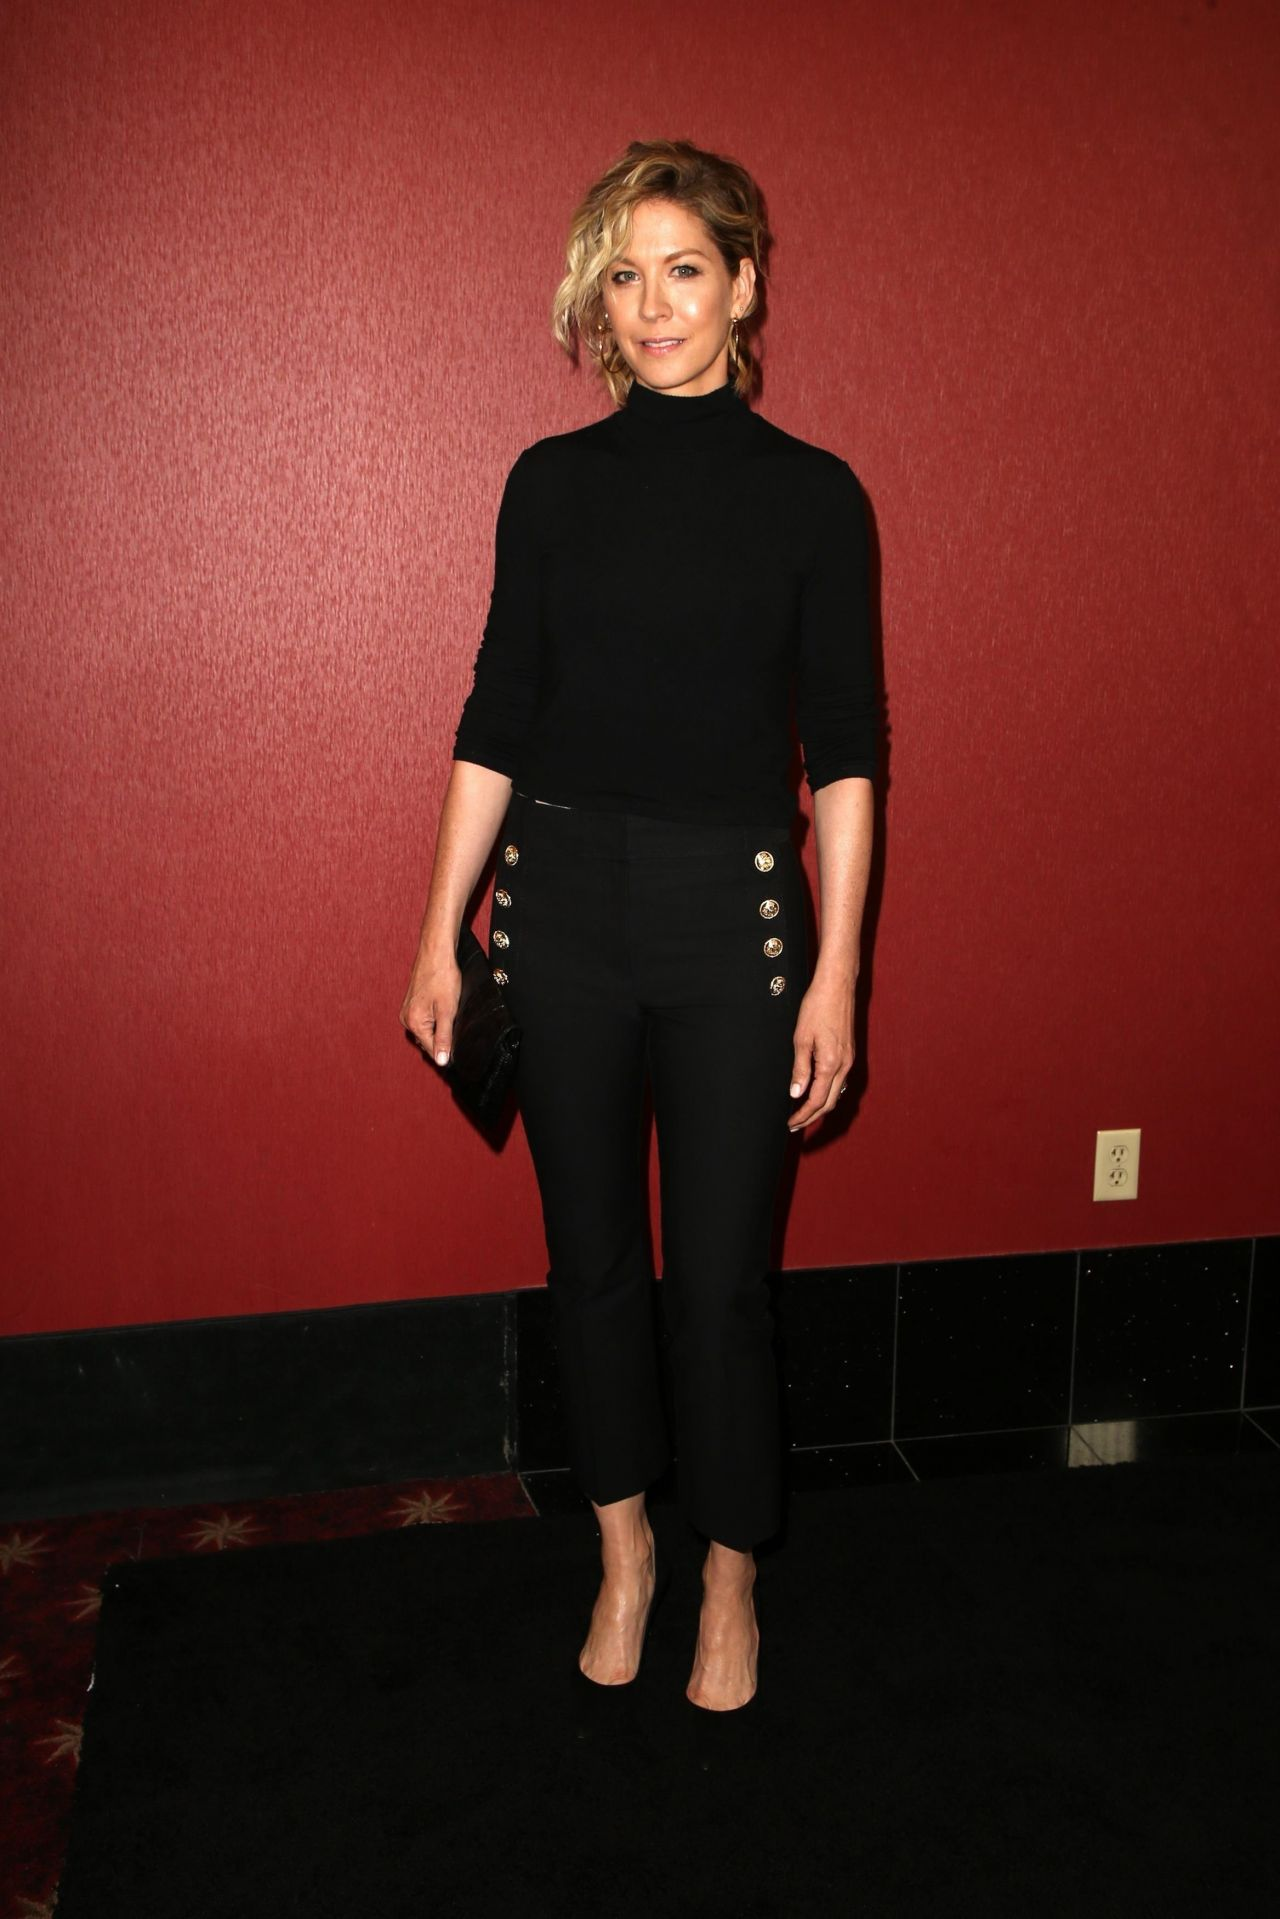 https://celebmafia.com/wp-content/uploads/2018/04/jenna-elfman-fyc-the-walking-dead-and-fear-the-walking-dead-in-la-2.jpg